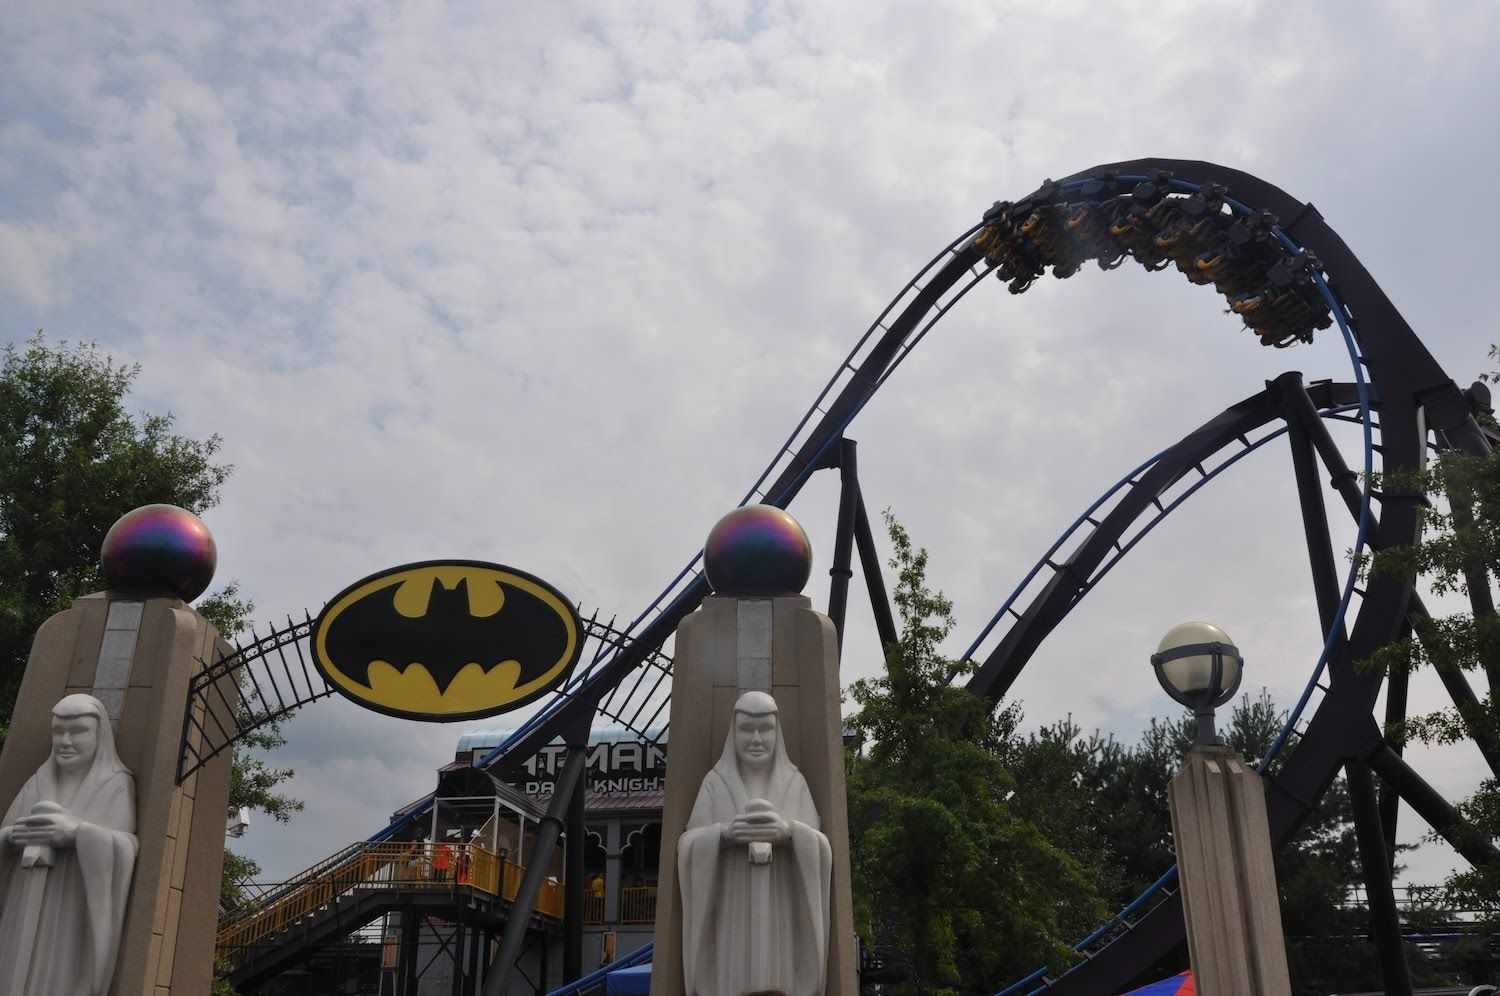 Batman The Dark Knight Off Ride In Hd At Six Flags New England